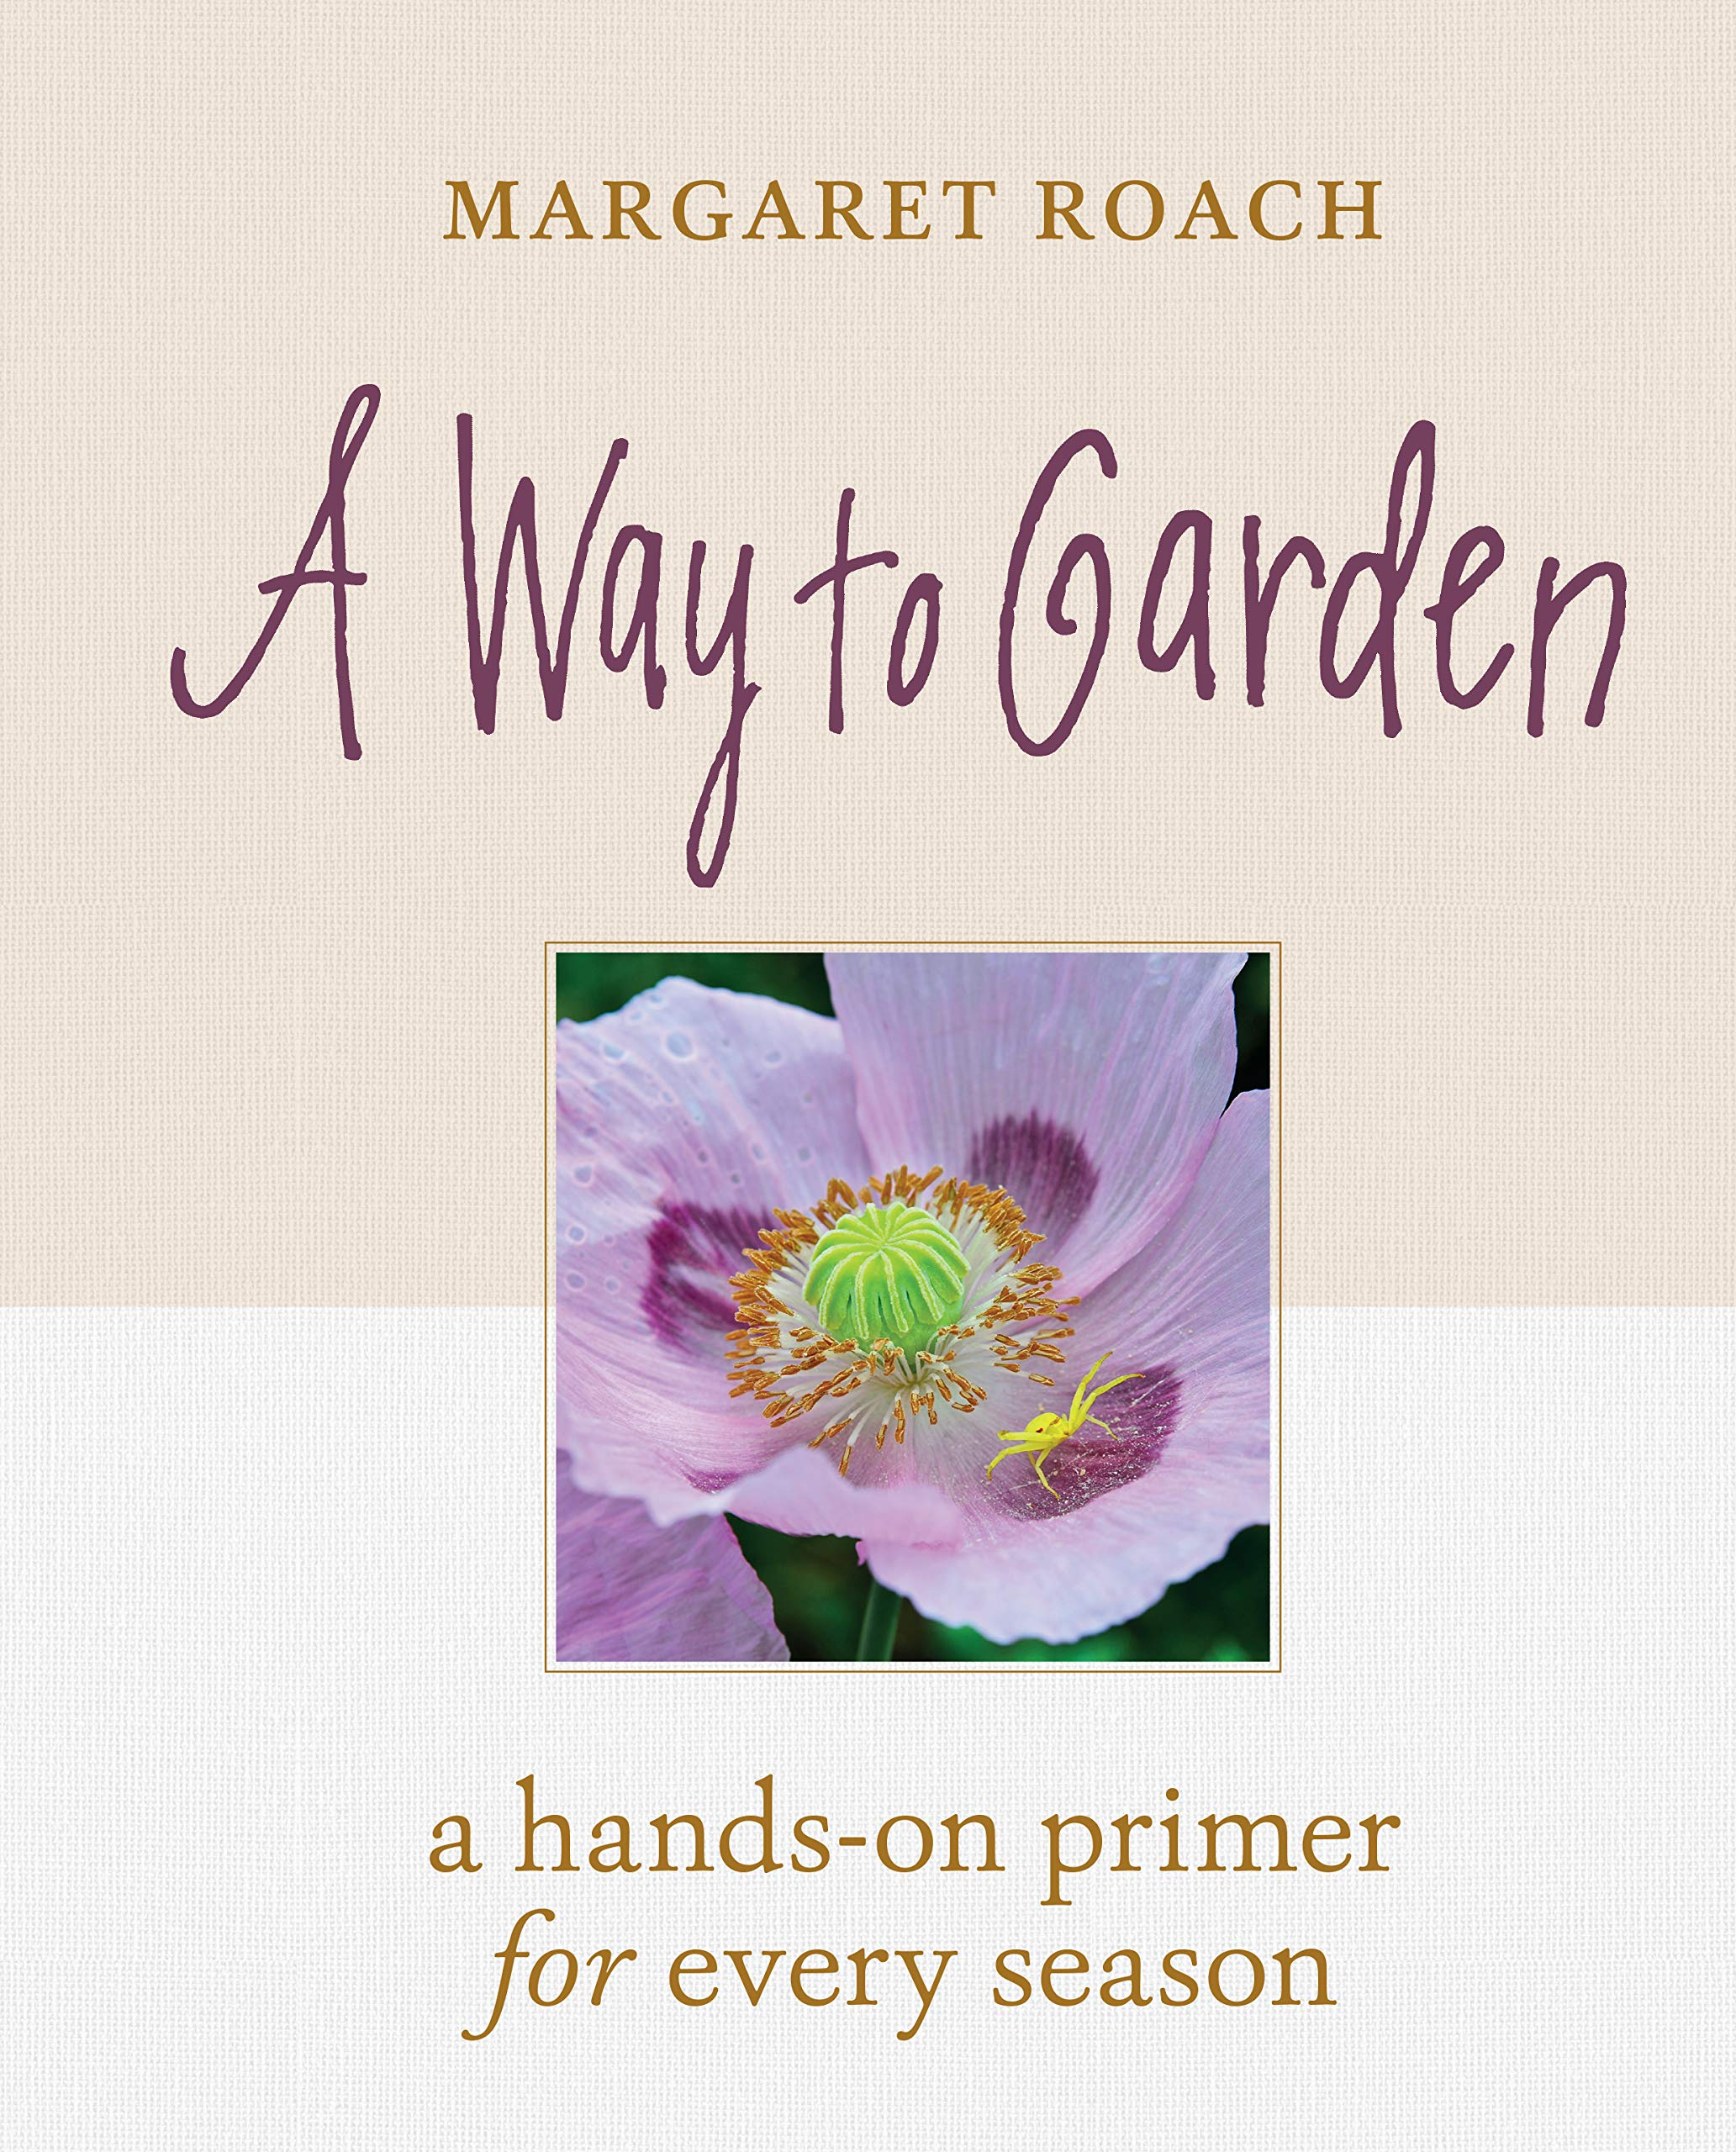 A Way to Garden: A Hands-On Primer for Every Season by Timber Press